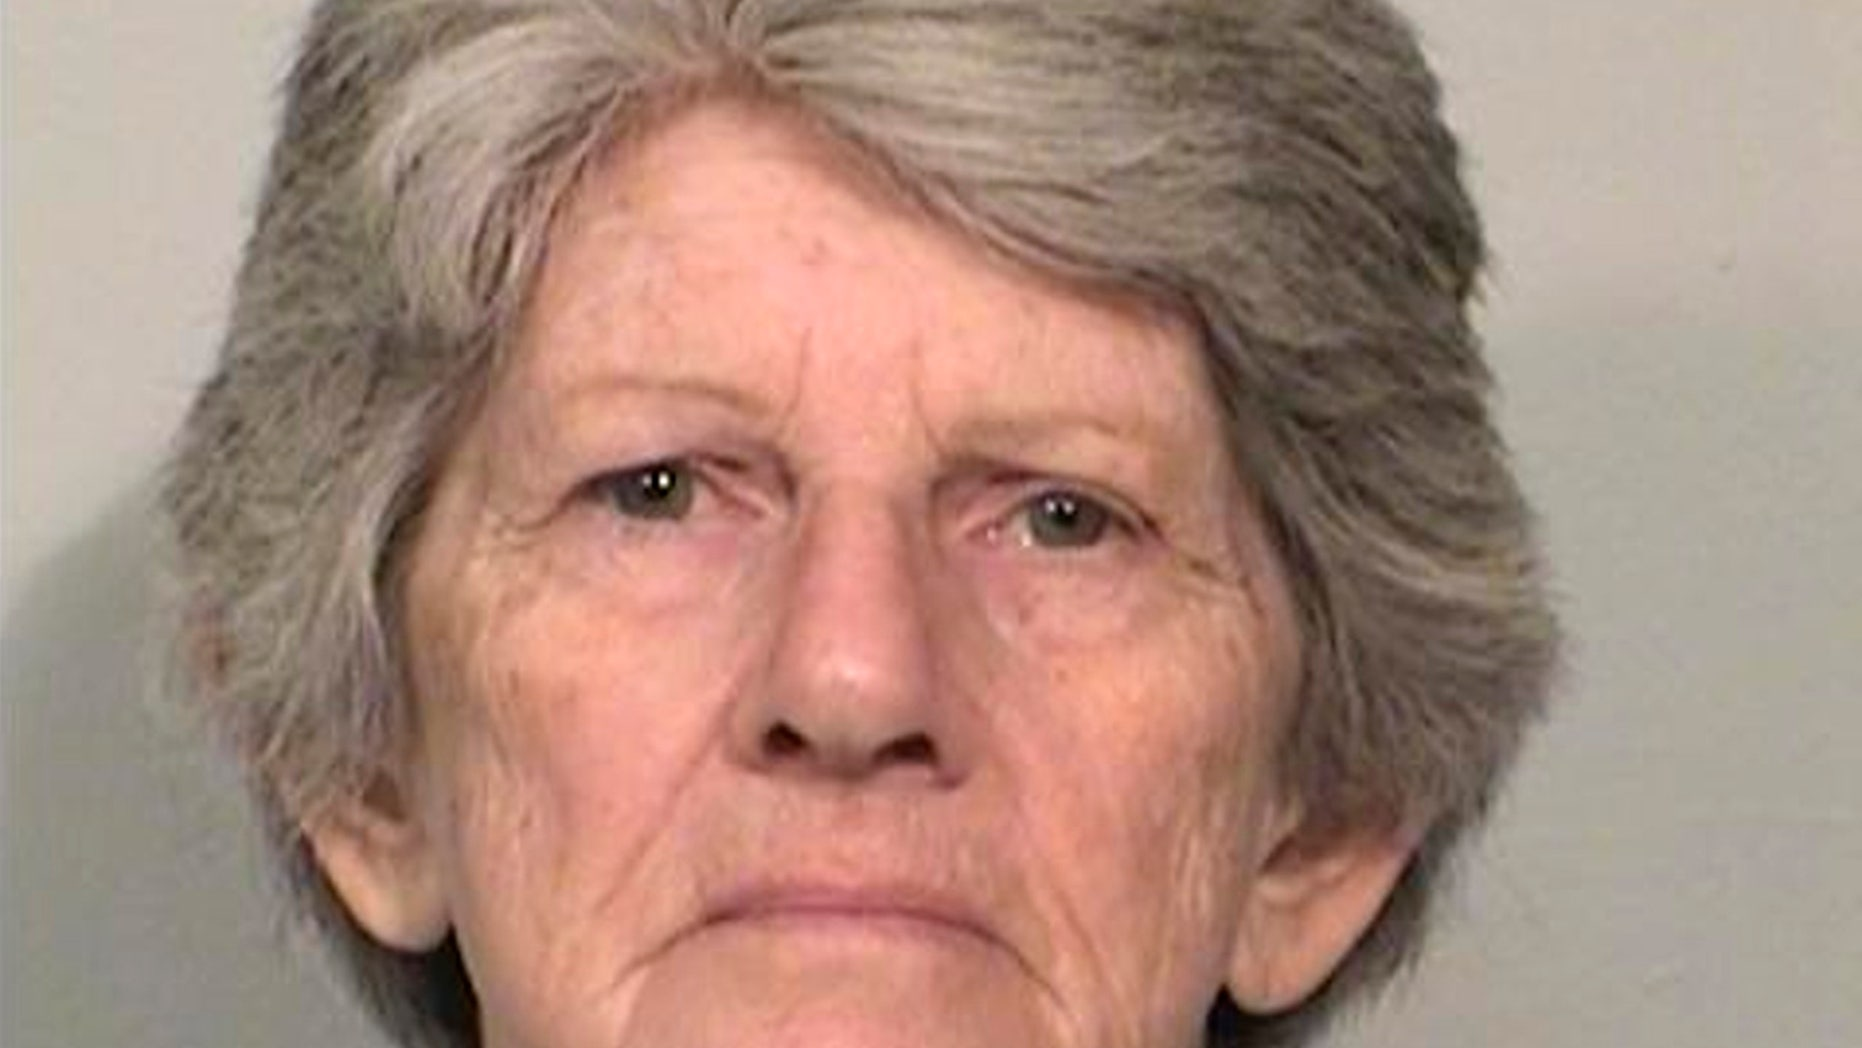 FILE - This Dec. 2, 2014 file photo provided by the California Department of Corrections and Rehabilitation shows Patricia Krenwinkel.